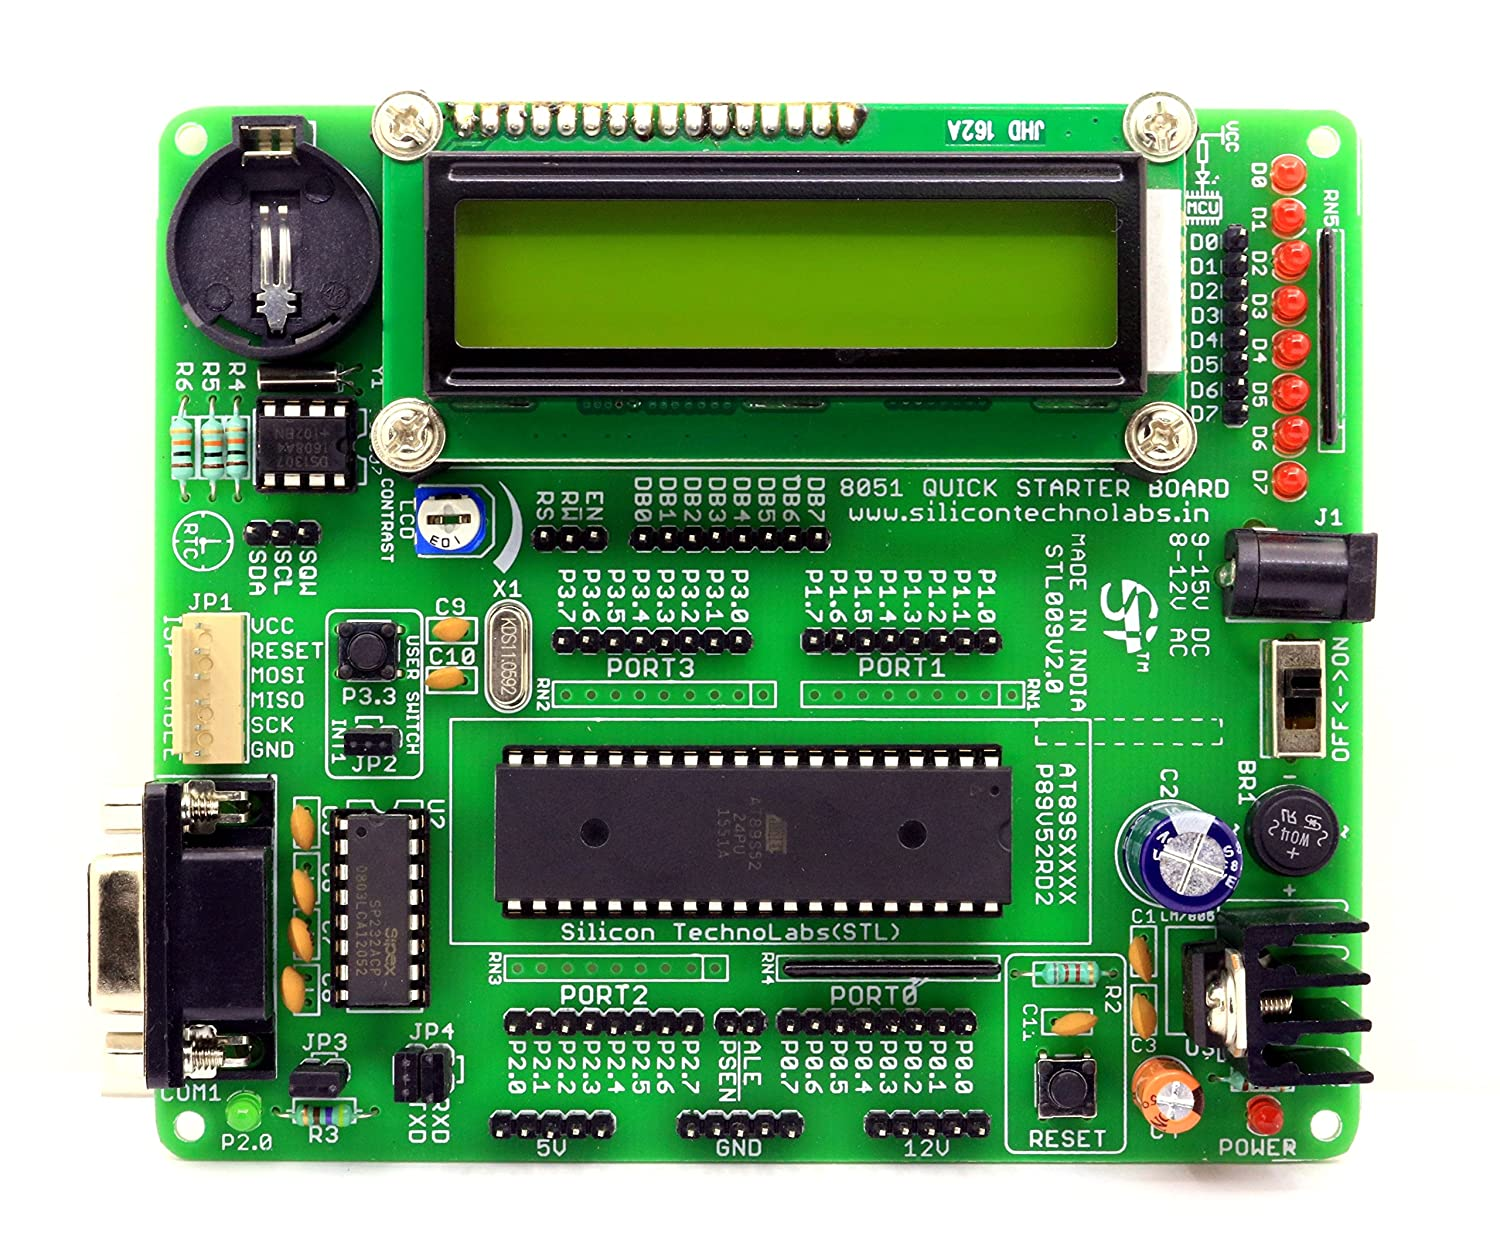 Silicon Technolabs Atmel 8051 Quick Starter Development Board And Usb Avr Programmer For Programming Many Atmega Tiny Classic Isp Kits Computers Accessories